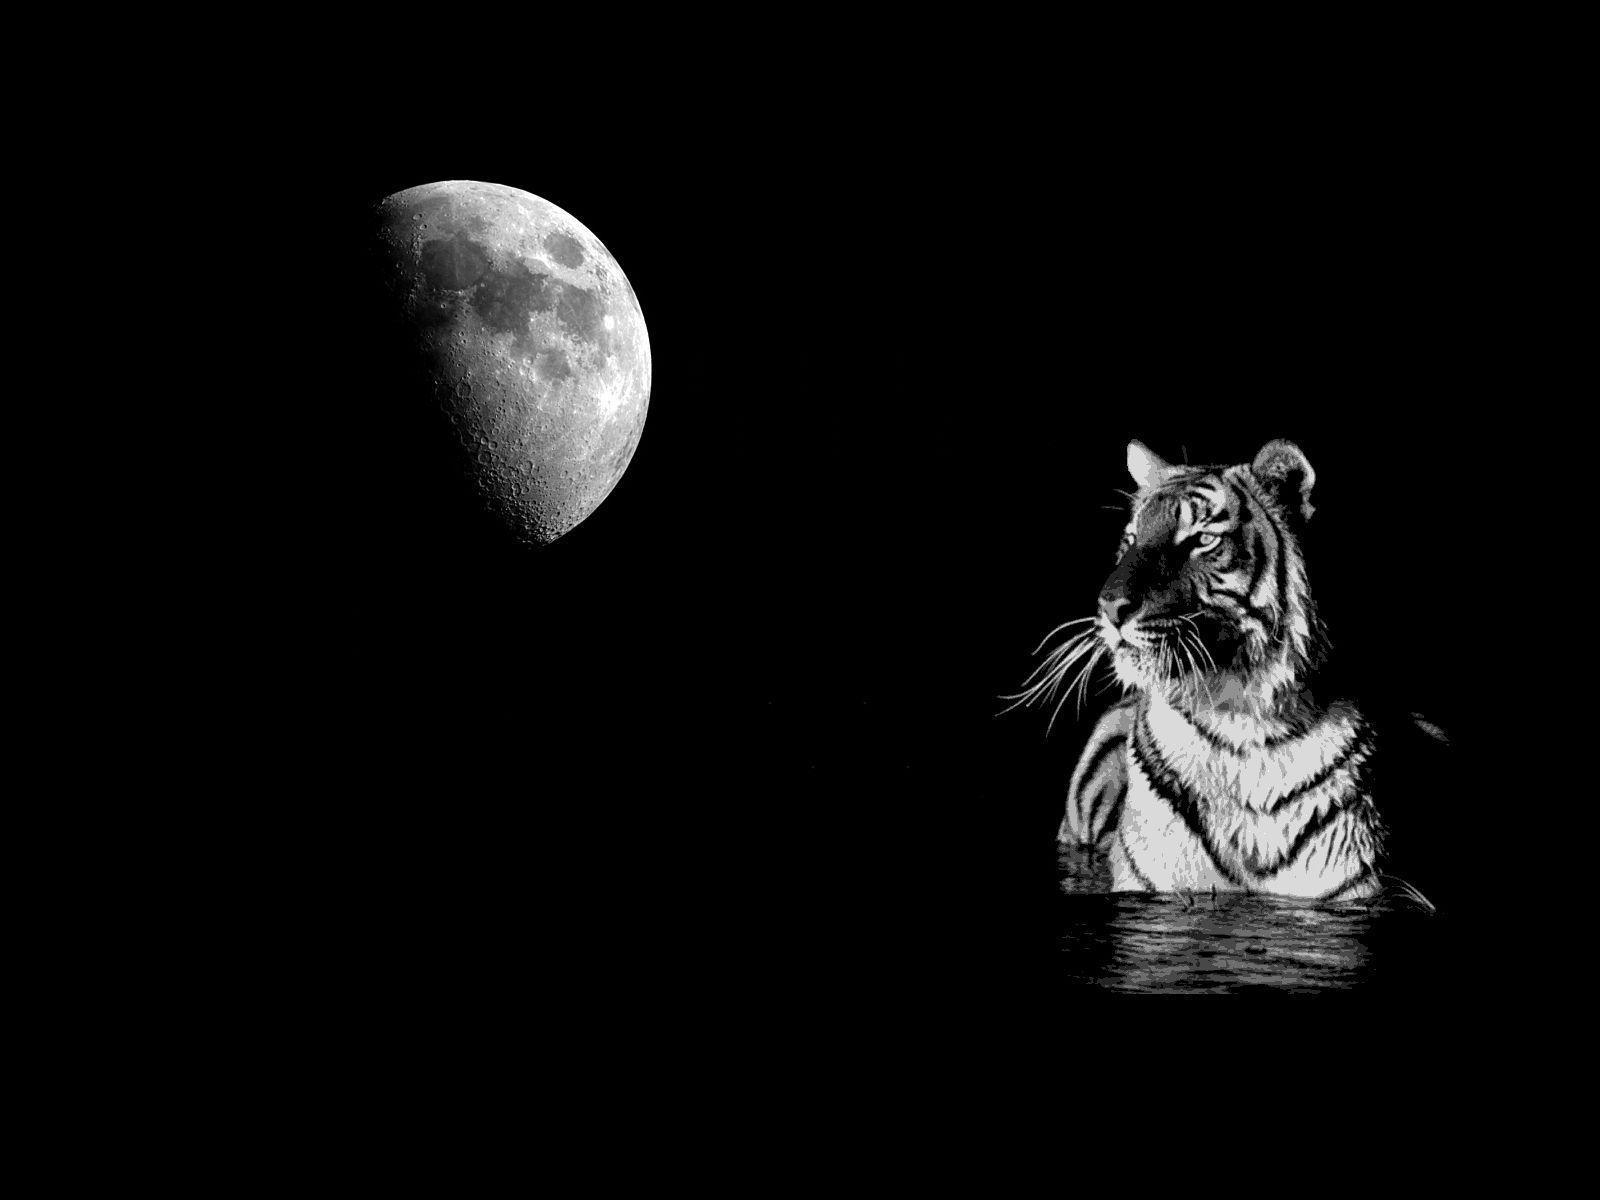 White Tiger Wallpapers for Desktop to Make Our PC Looks Tough and